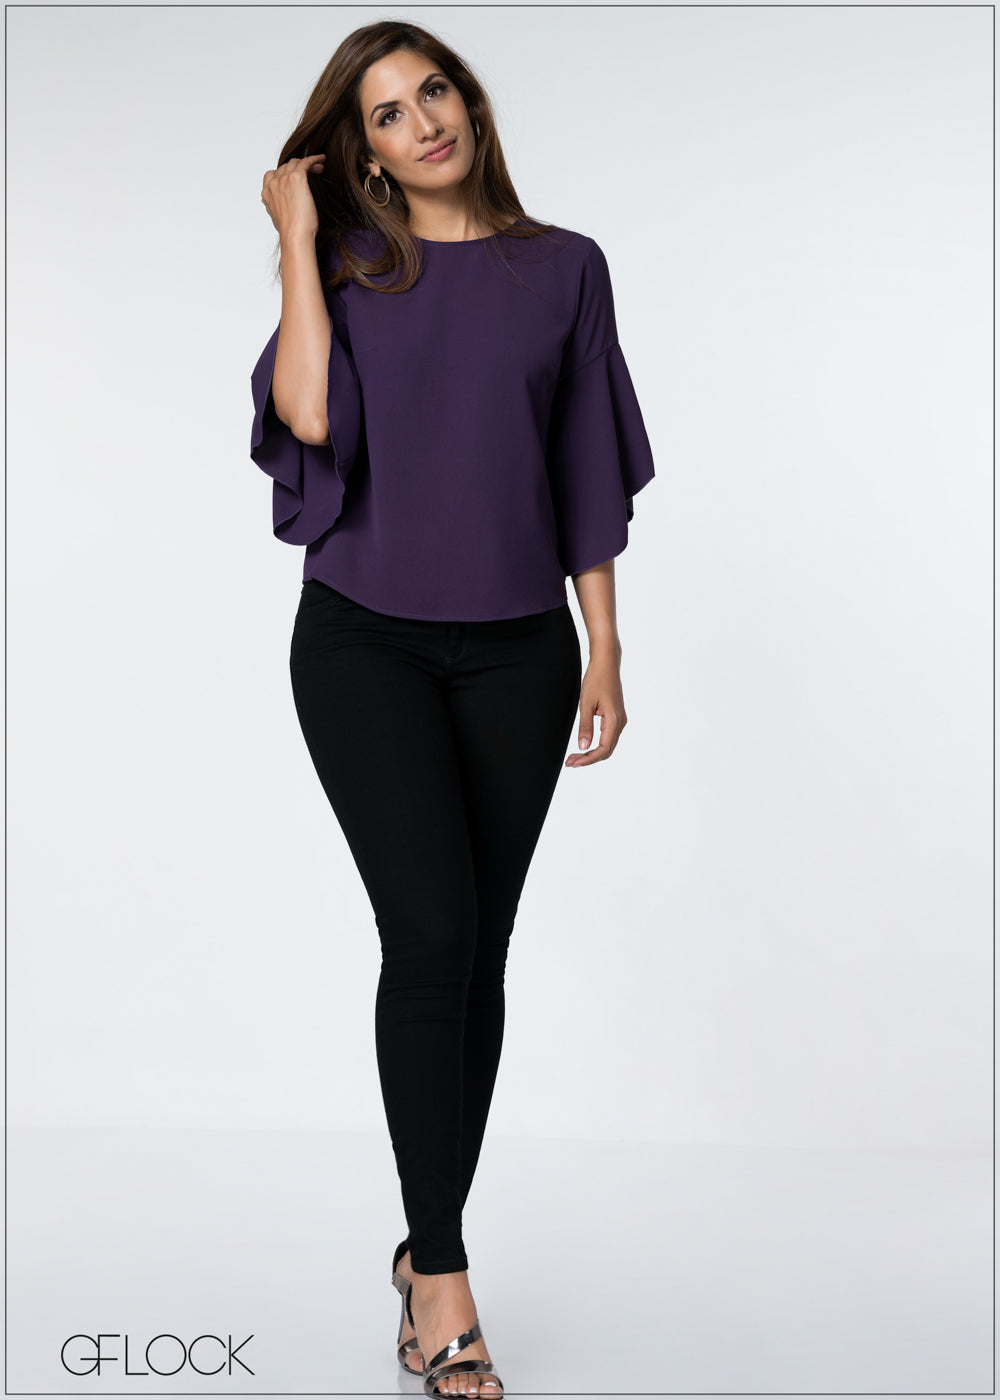 Flared Sleeve Evening Top